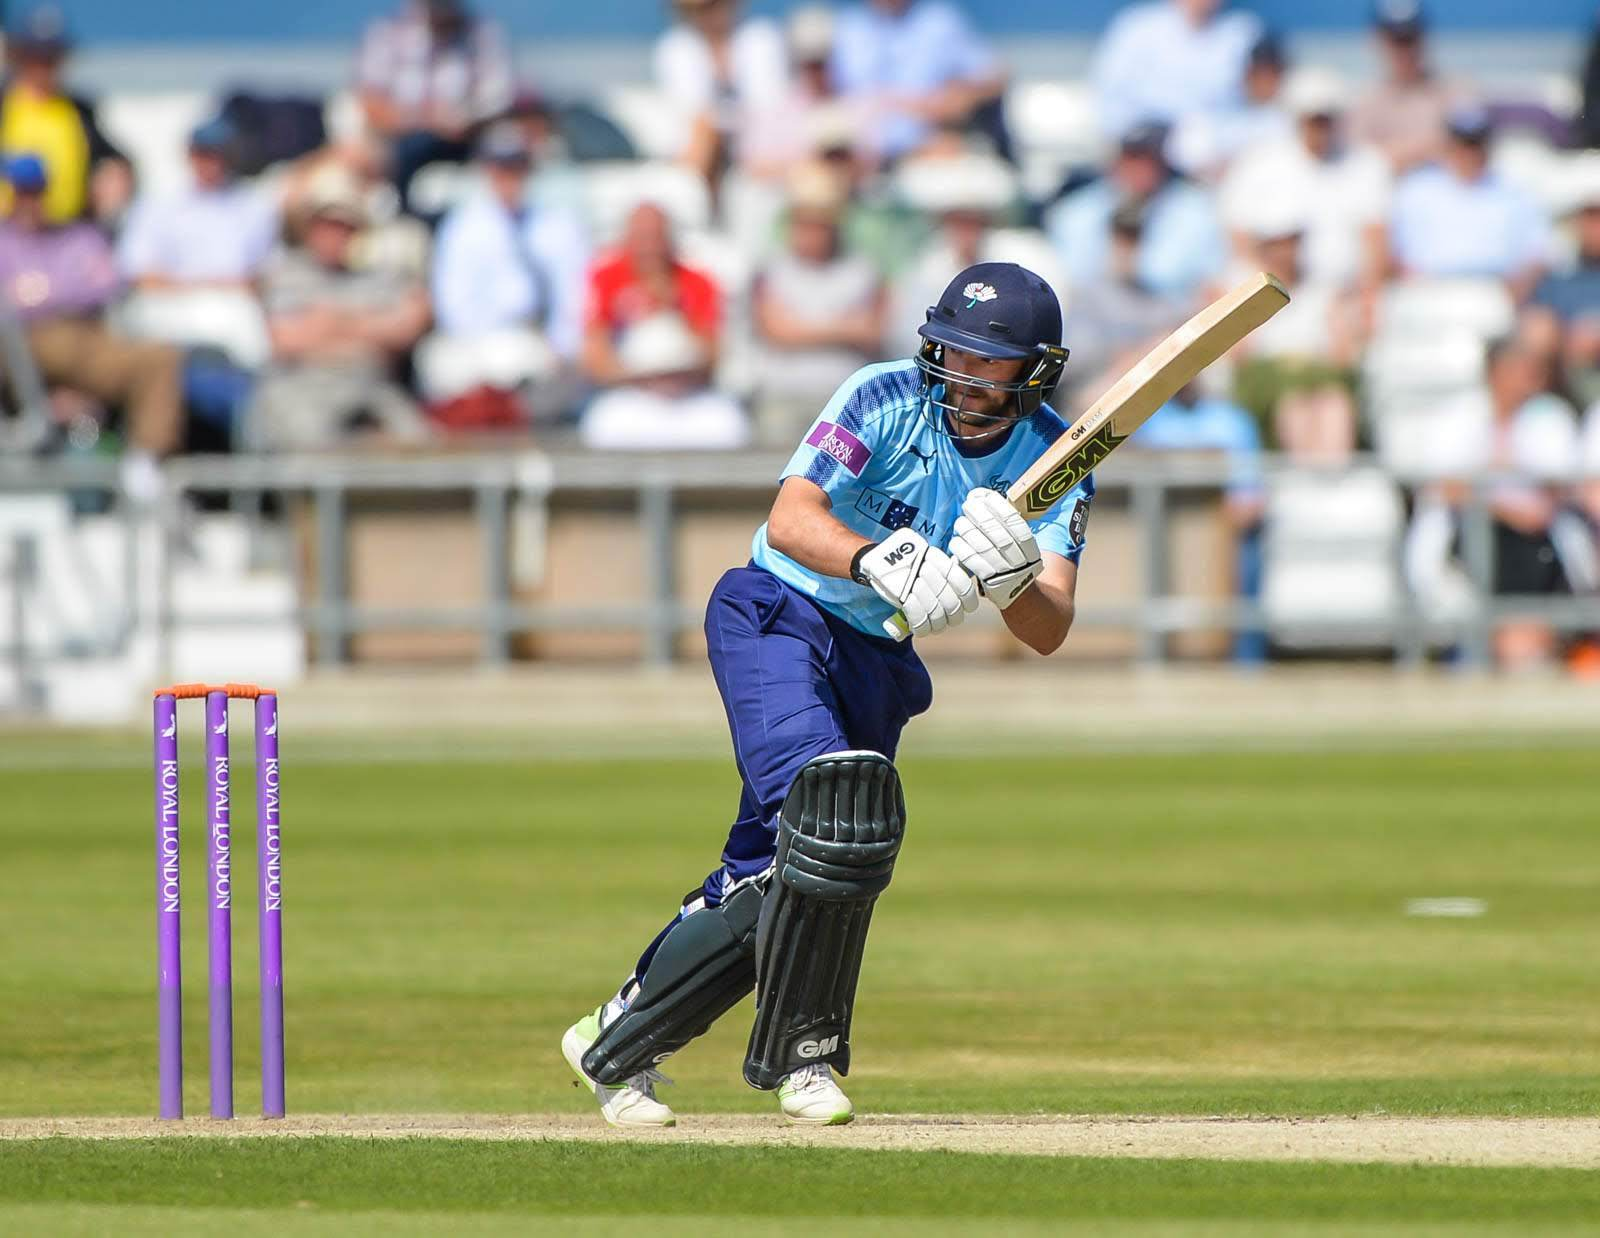 Adam Lyth hit a sparkling century. Picture: ray Spencer